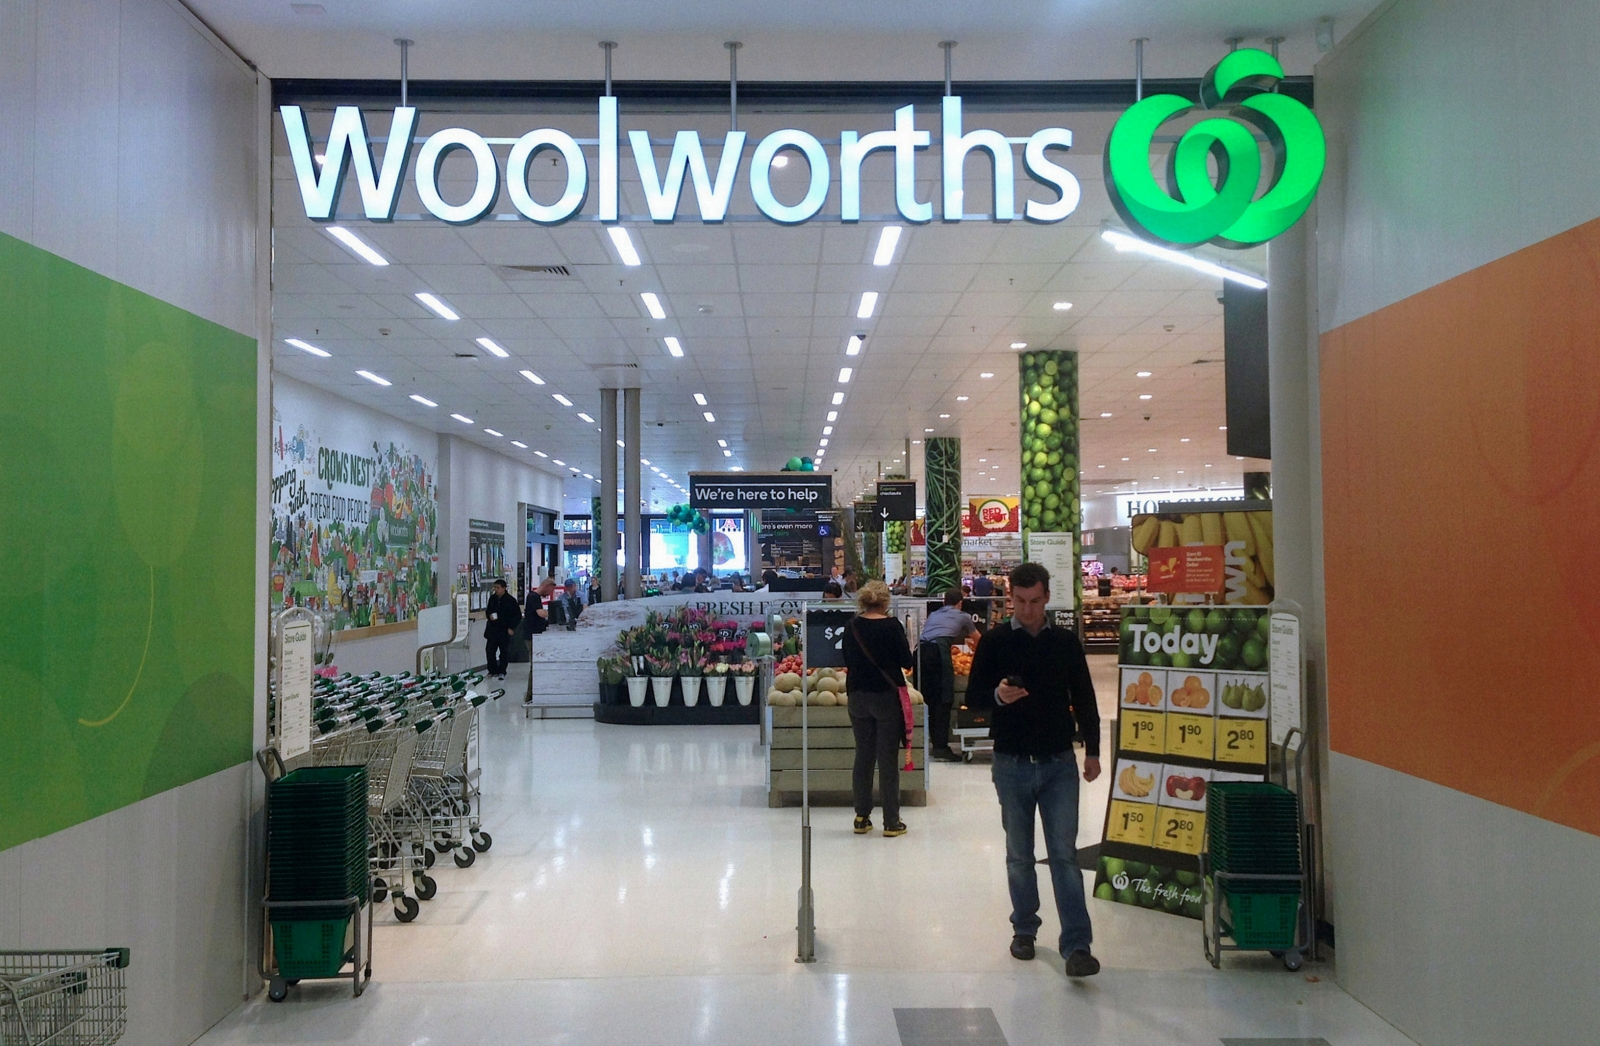 BP Agrees to Buy Woolworths Fuels Business for $1.29 Billion